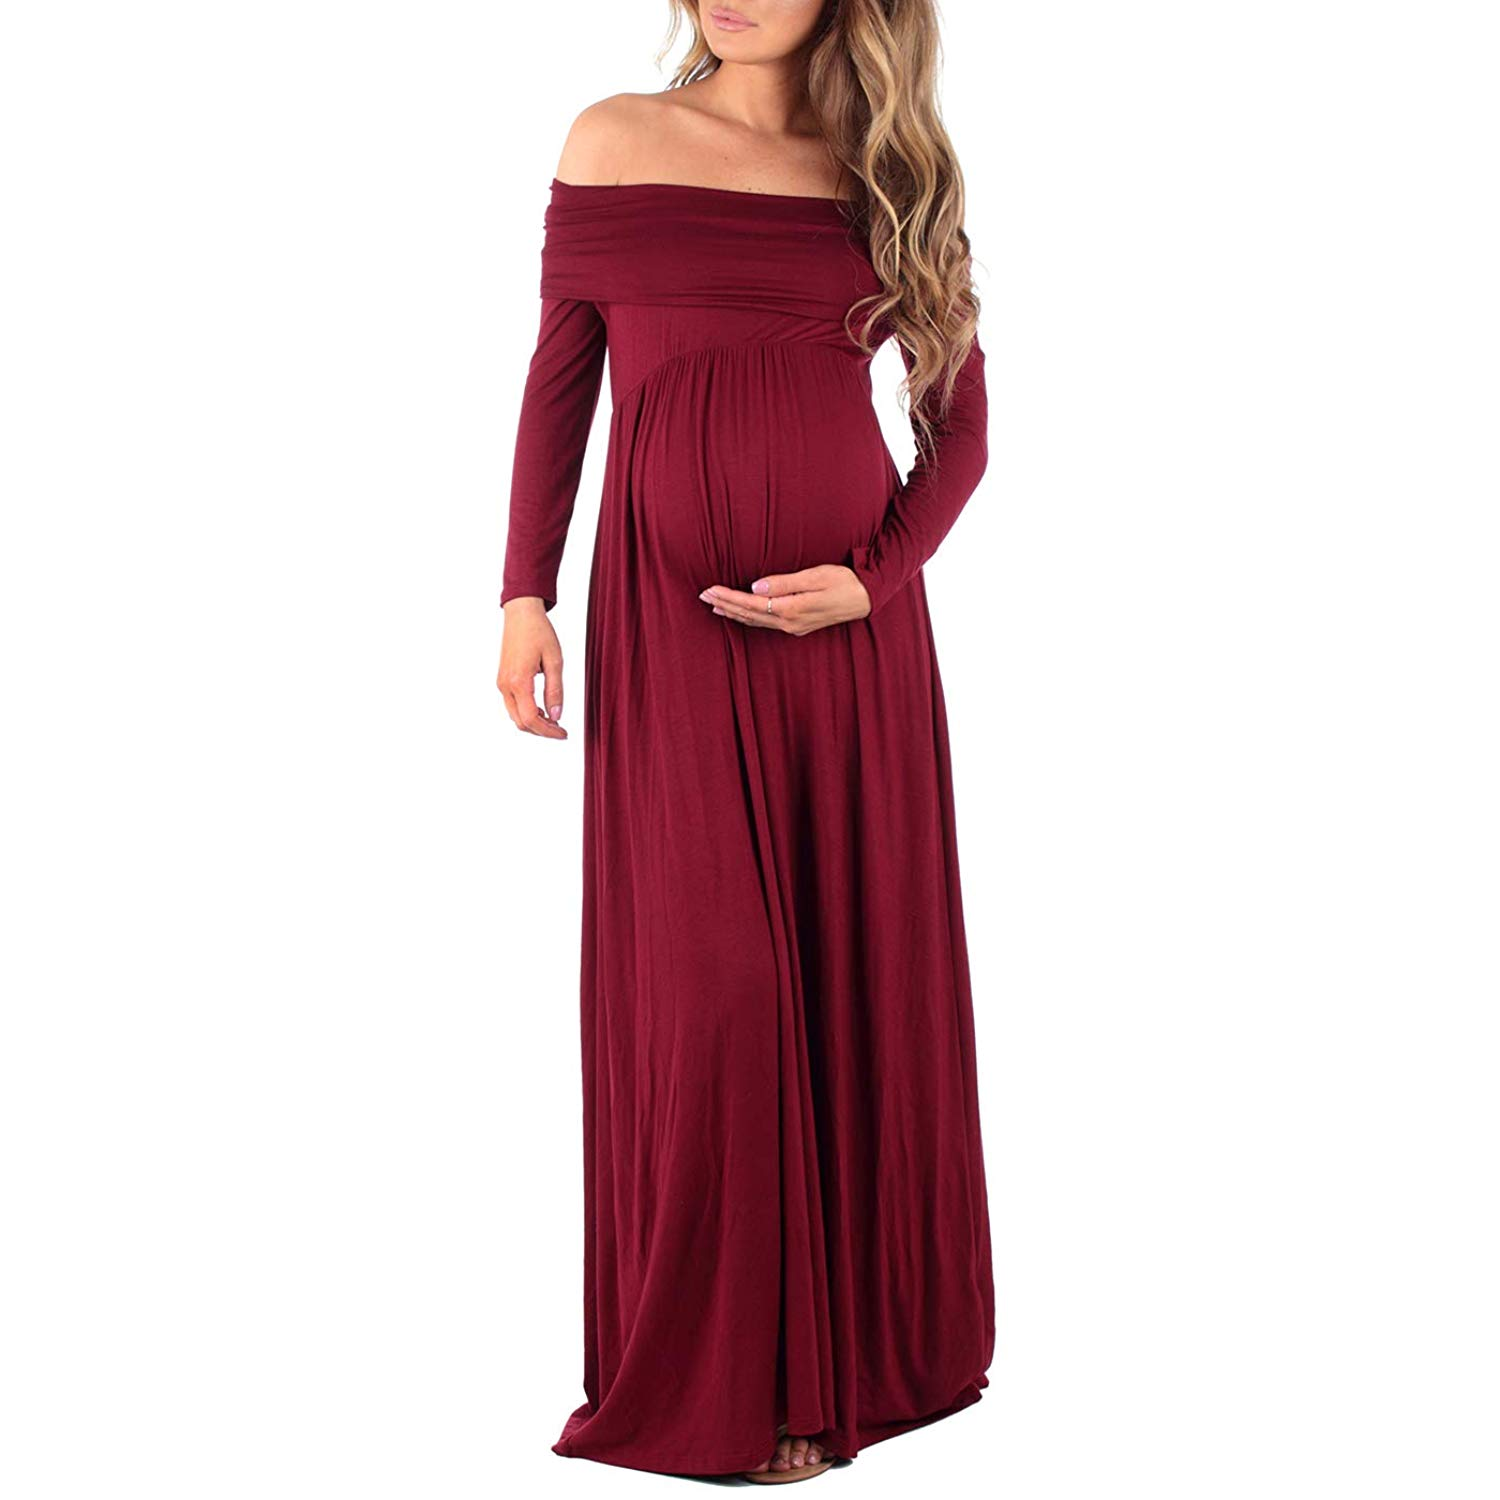 8846ba7b4e25c Get Quotations · Women's Cowl Neck and Over The Shoulder Ruched Maternity  and Nursing Dress ...